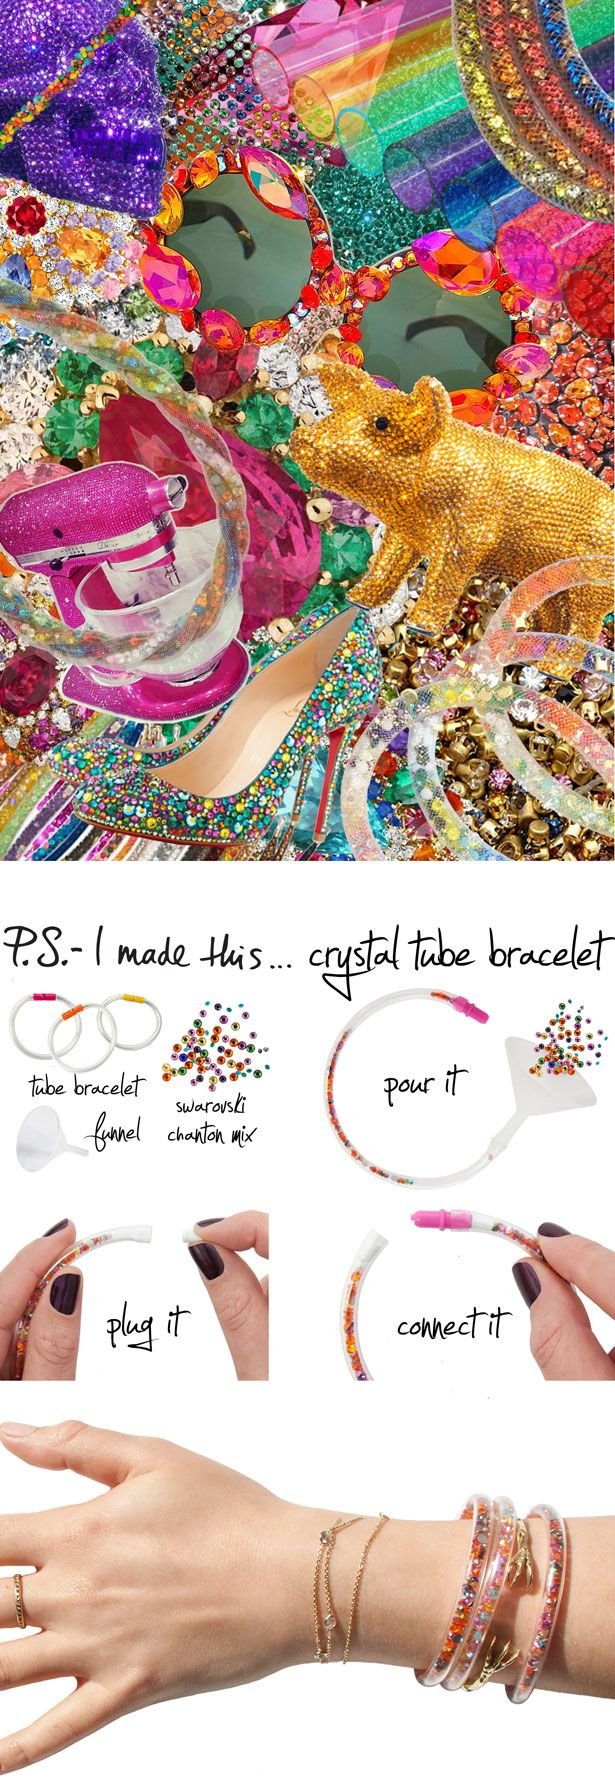 P.S.-I made this...Crystal Tube Bracelet #PSIMADETHIS #DIY